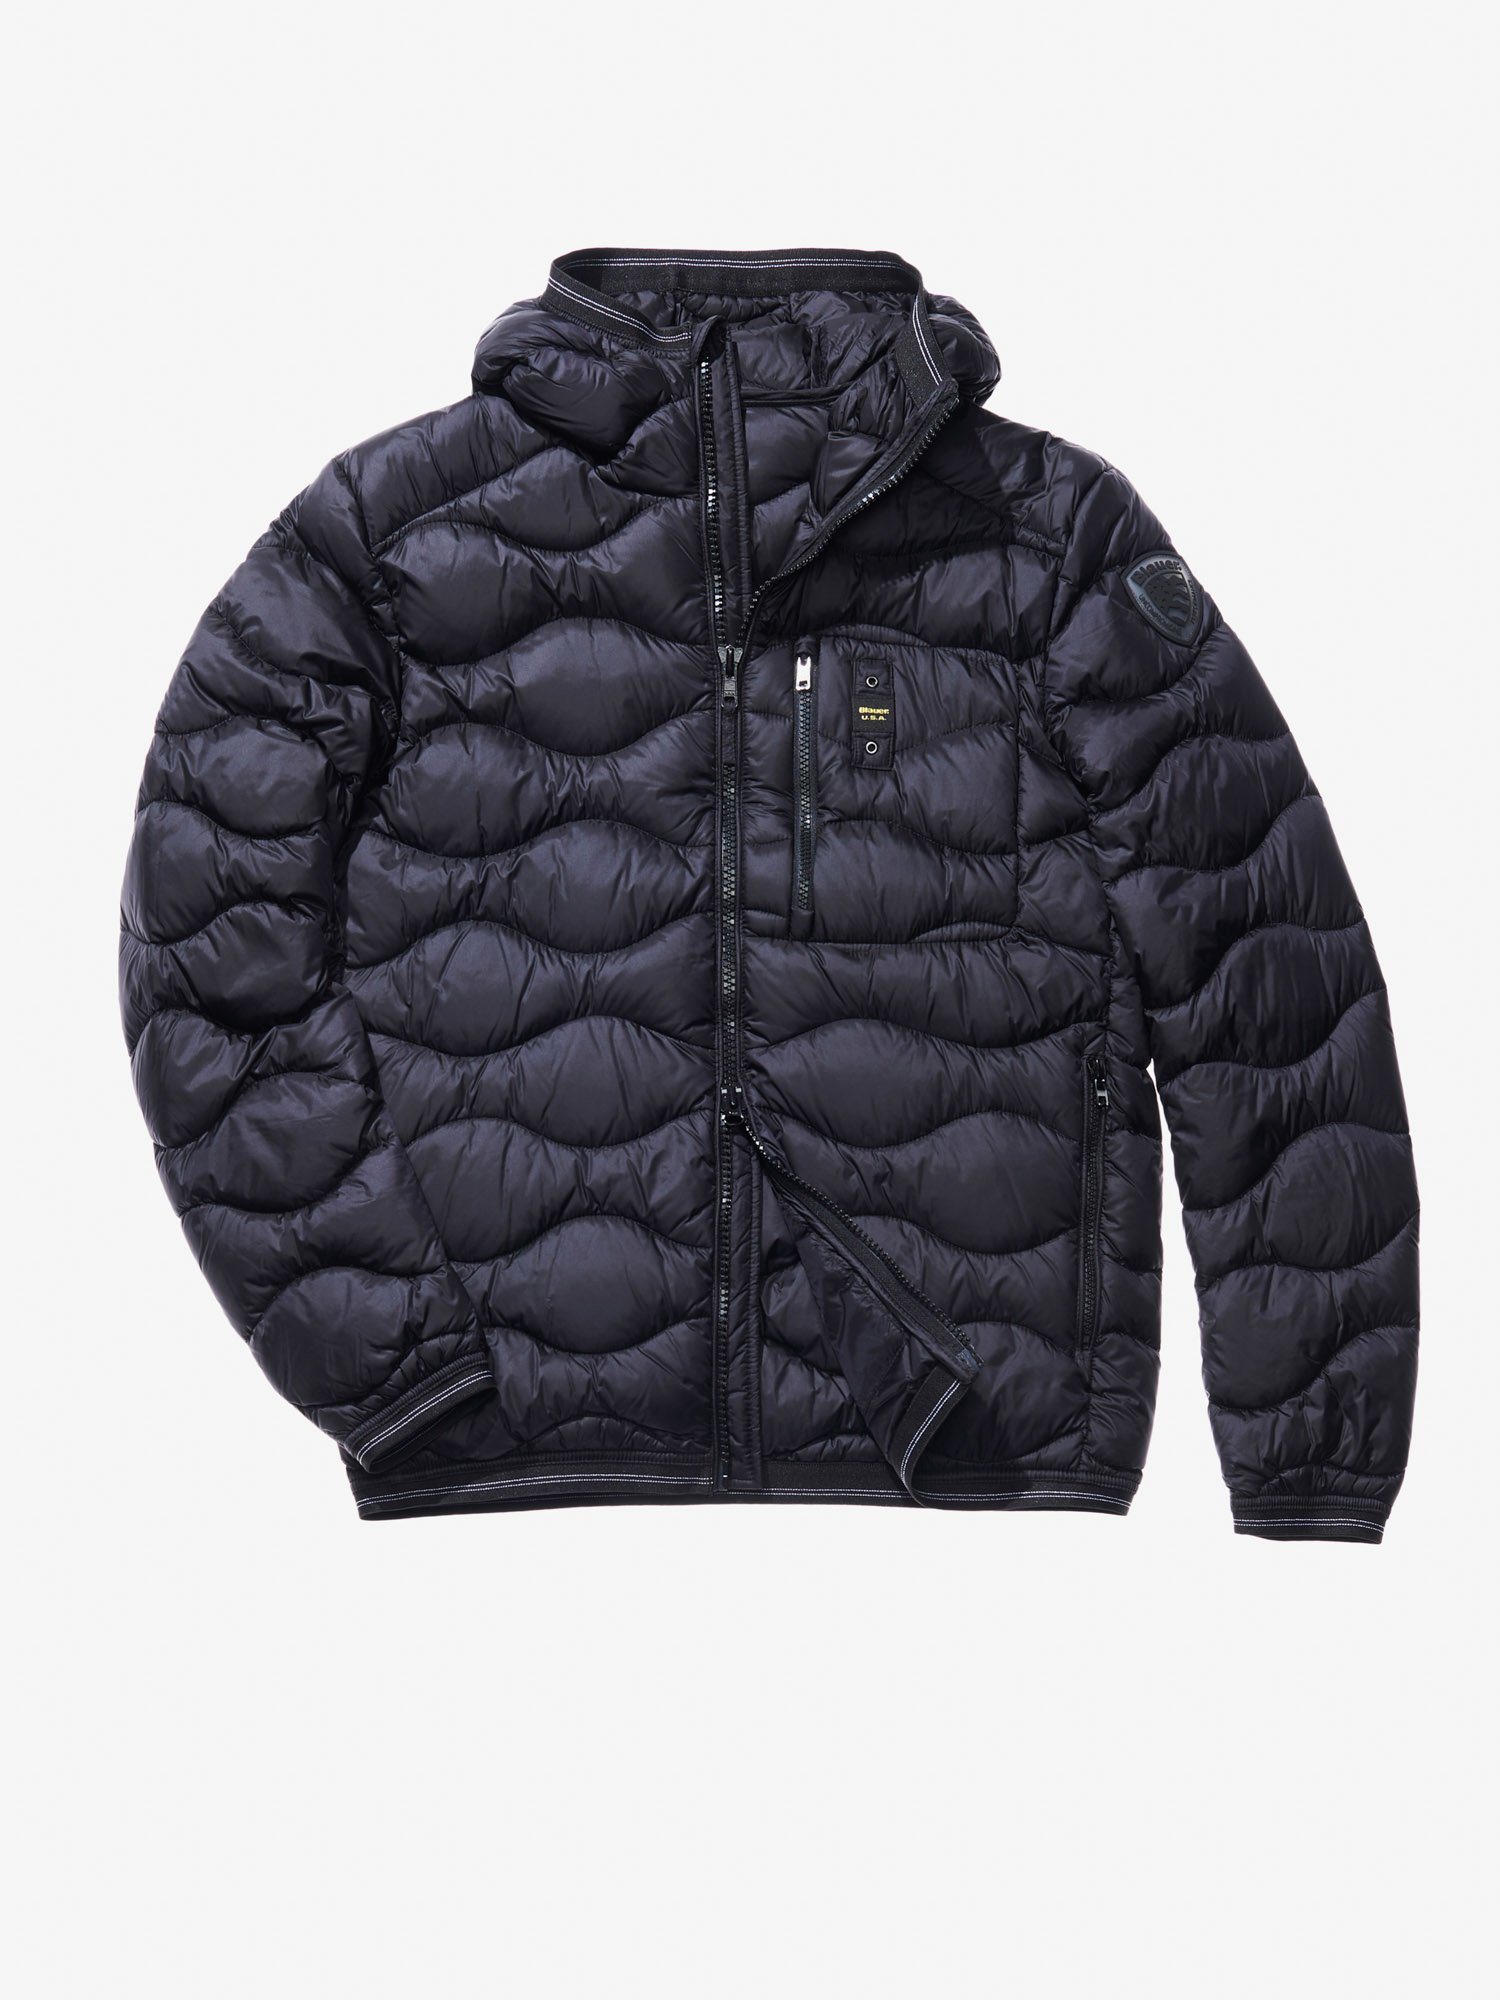 Blauer - DOMENICO WAVE-QUILTED MILITARY-STYLE DOWN JACKET - Black - Blauer